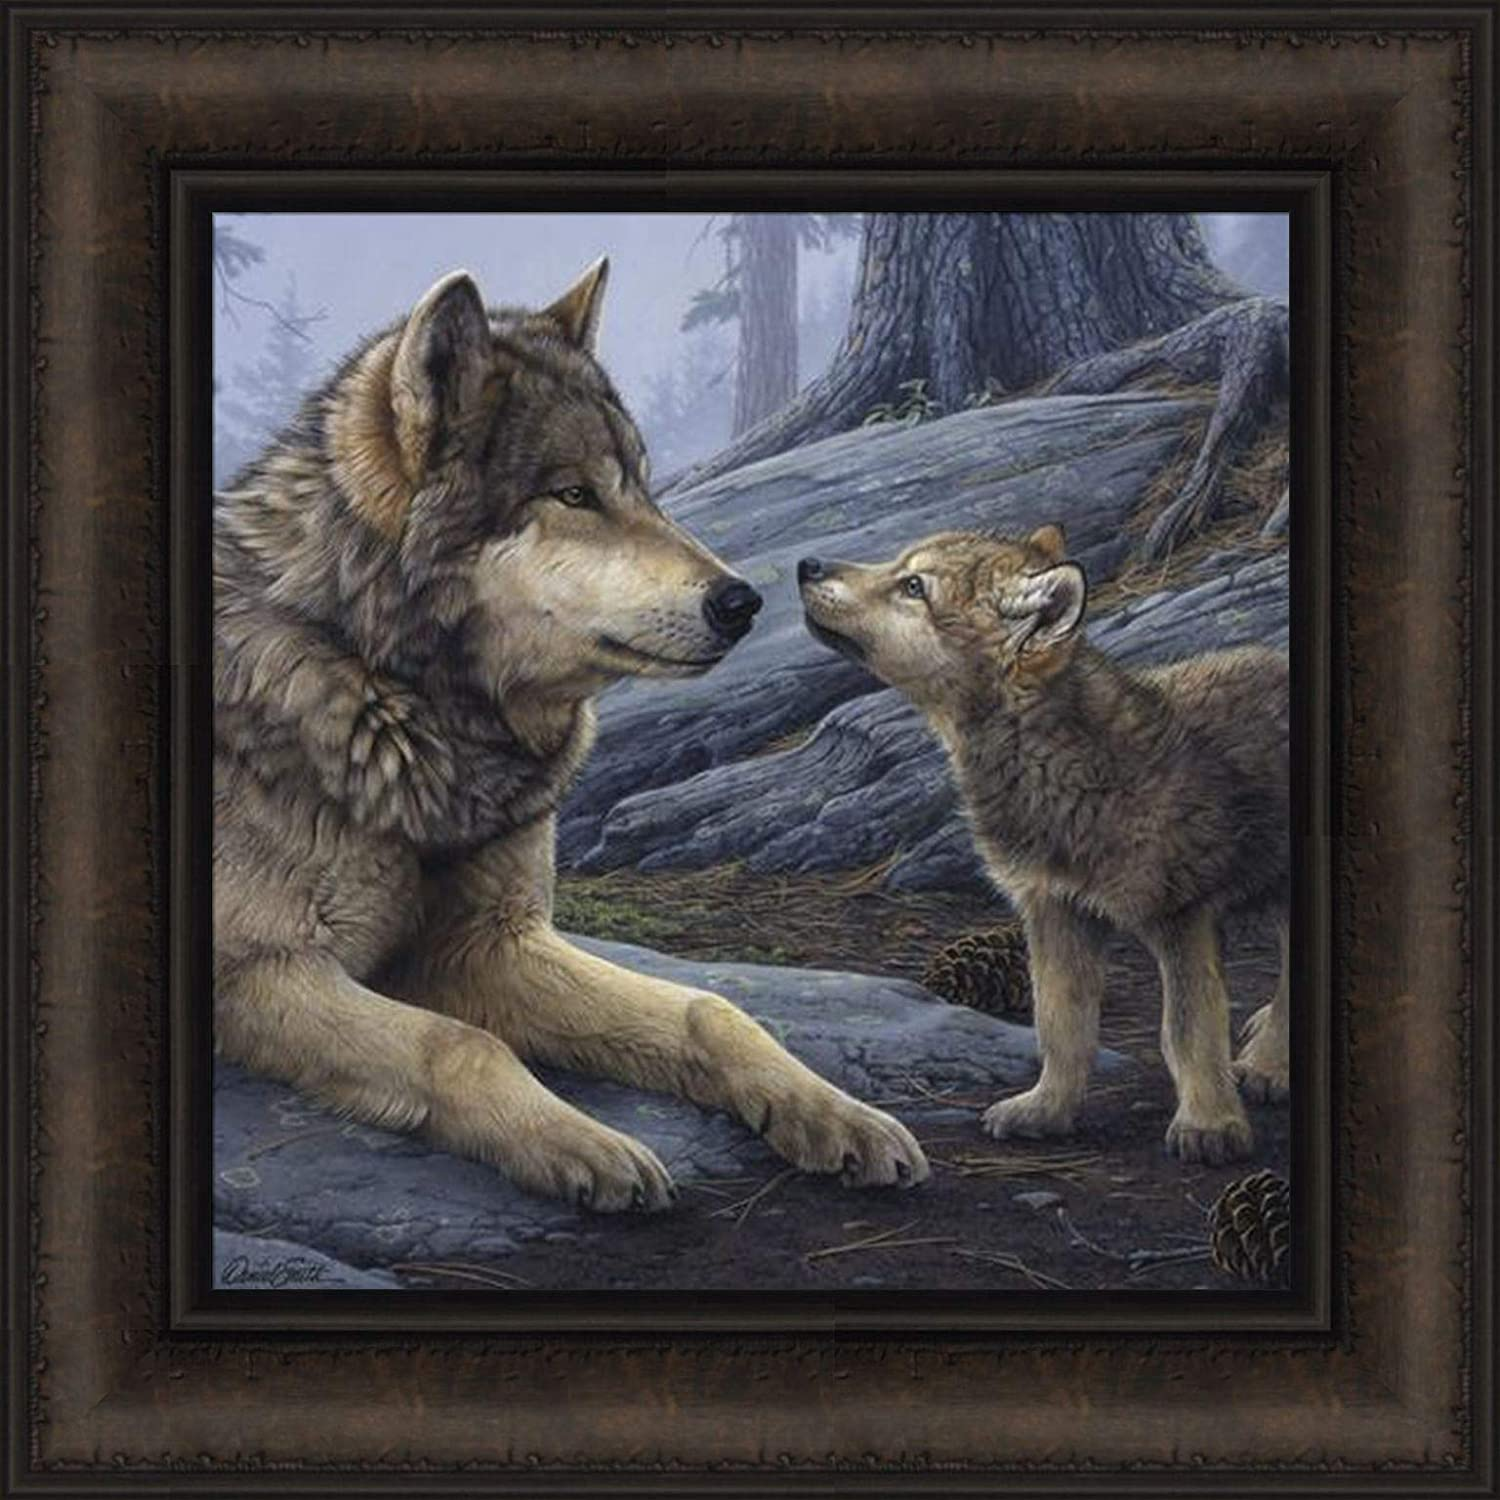 Brother Wolf by Daniel Smith 16x16 Timberwolf Timber Wolves Pup Framed Wildlife Art Print Wall Décor Picture